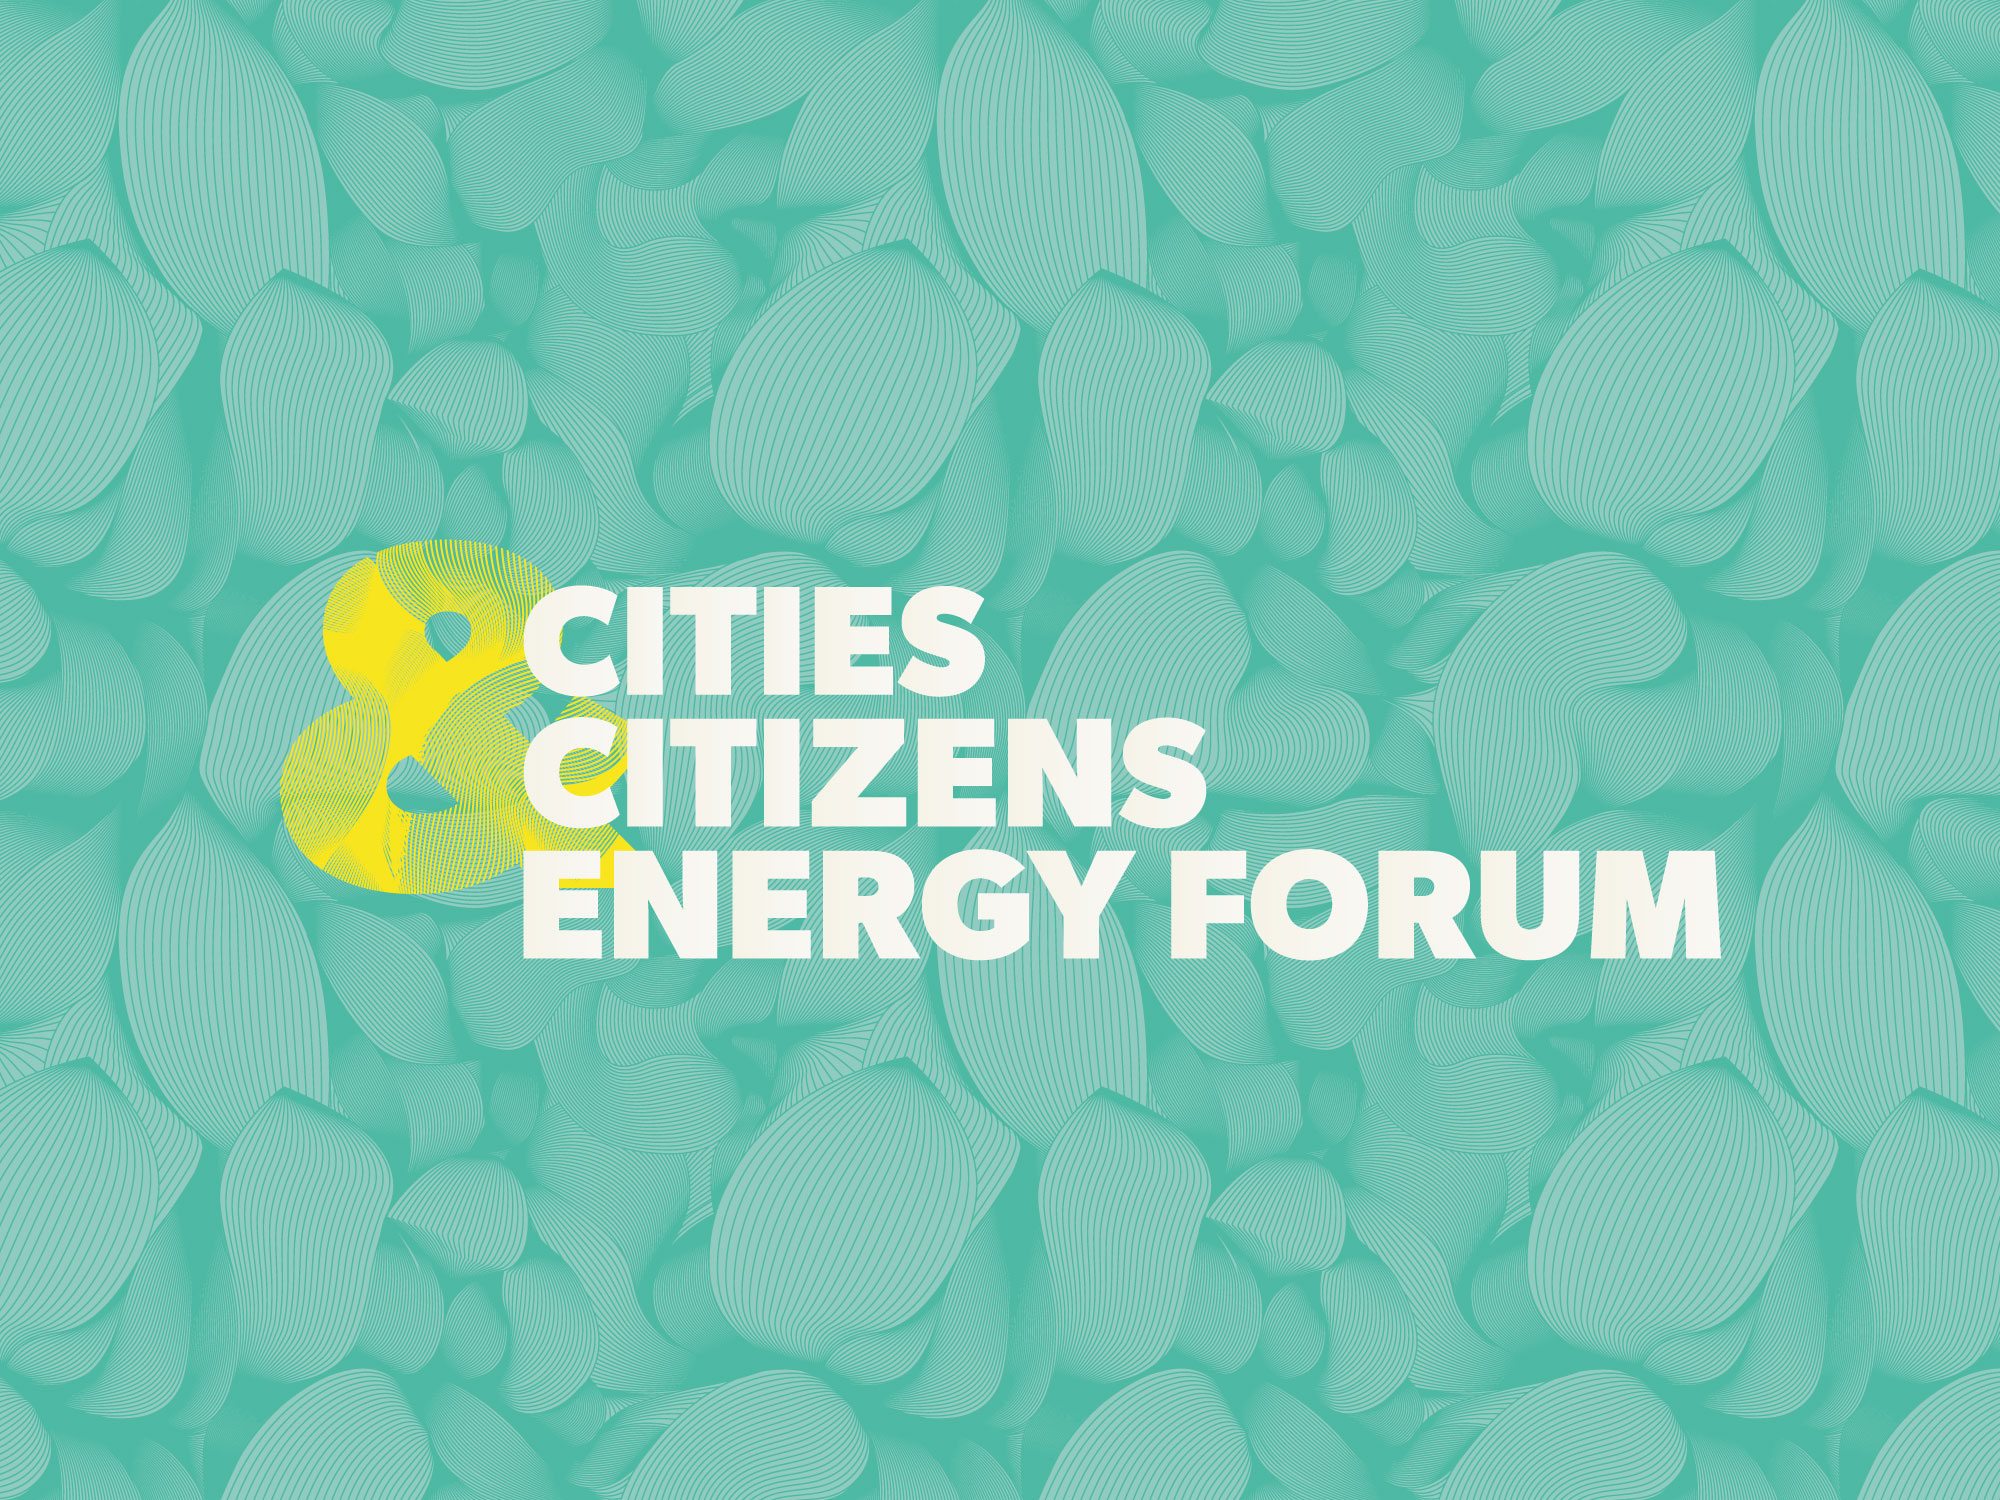 Cities and Citizens Energy Forum – Notez la date